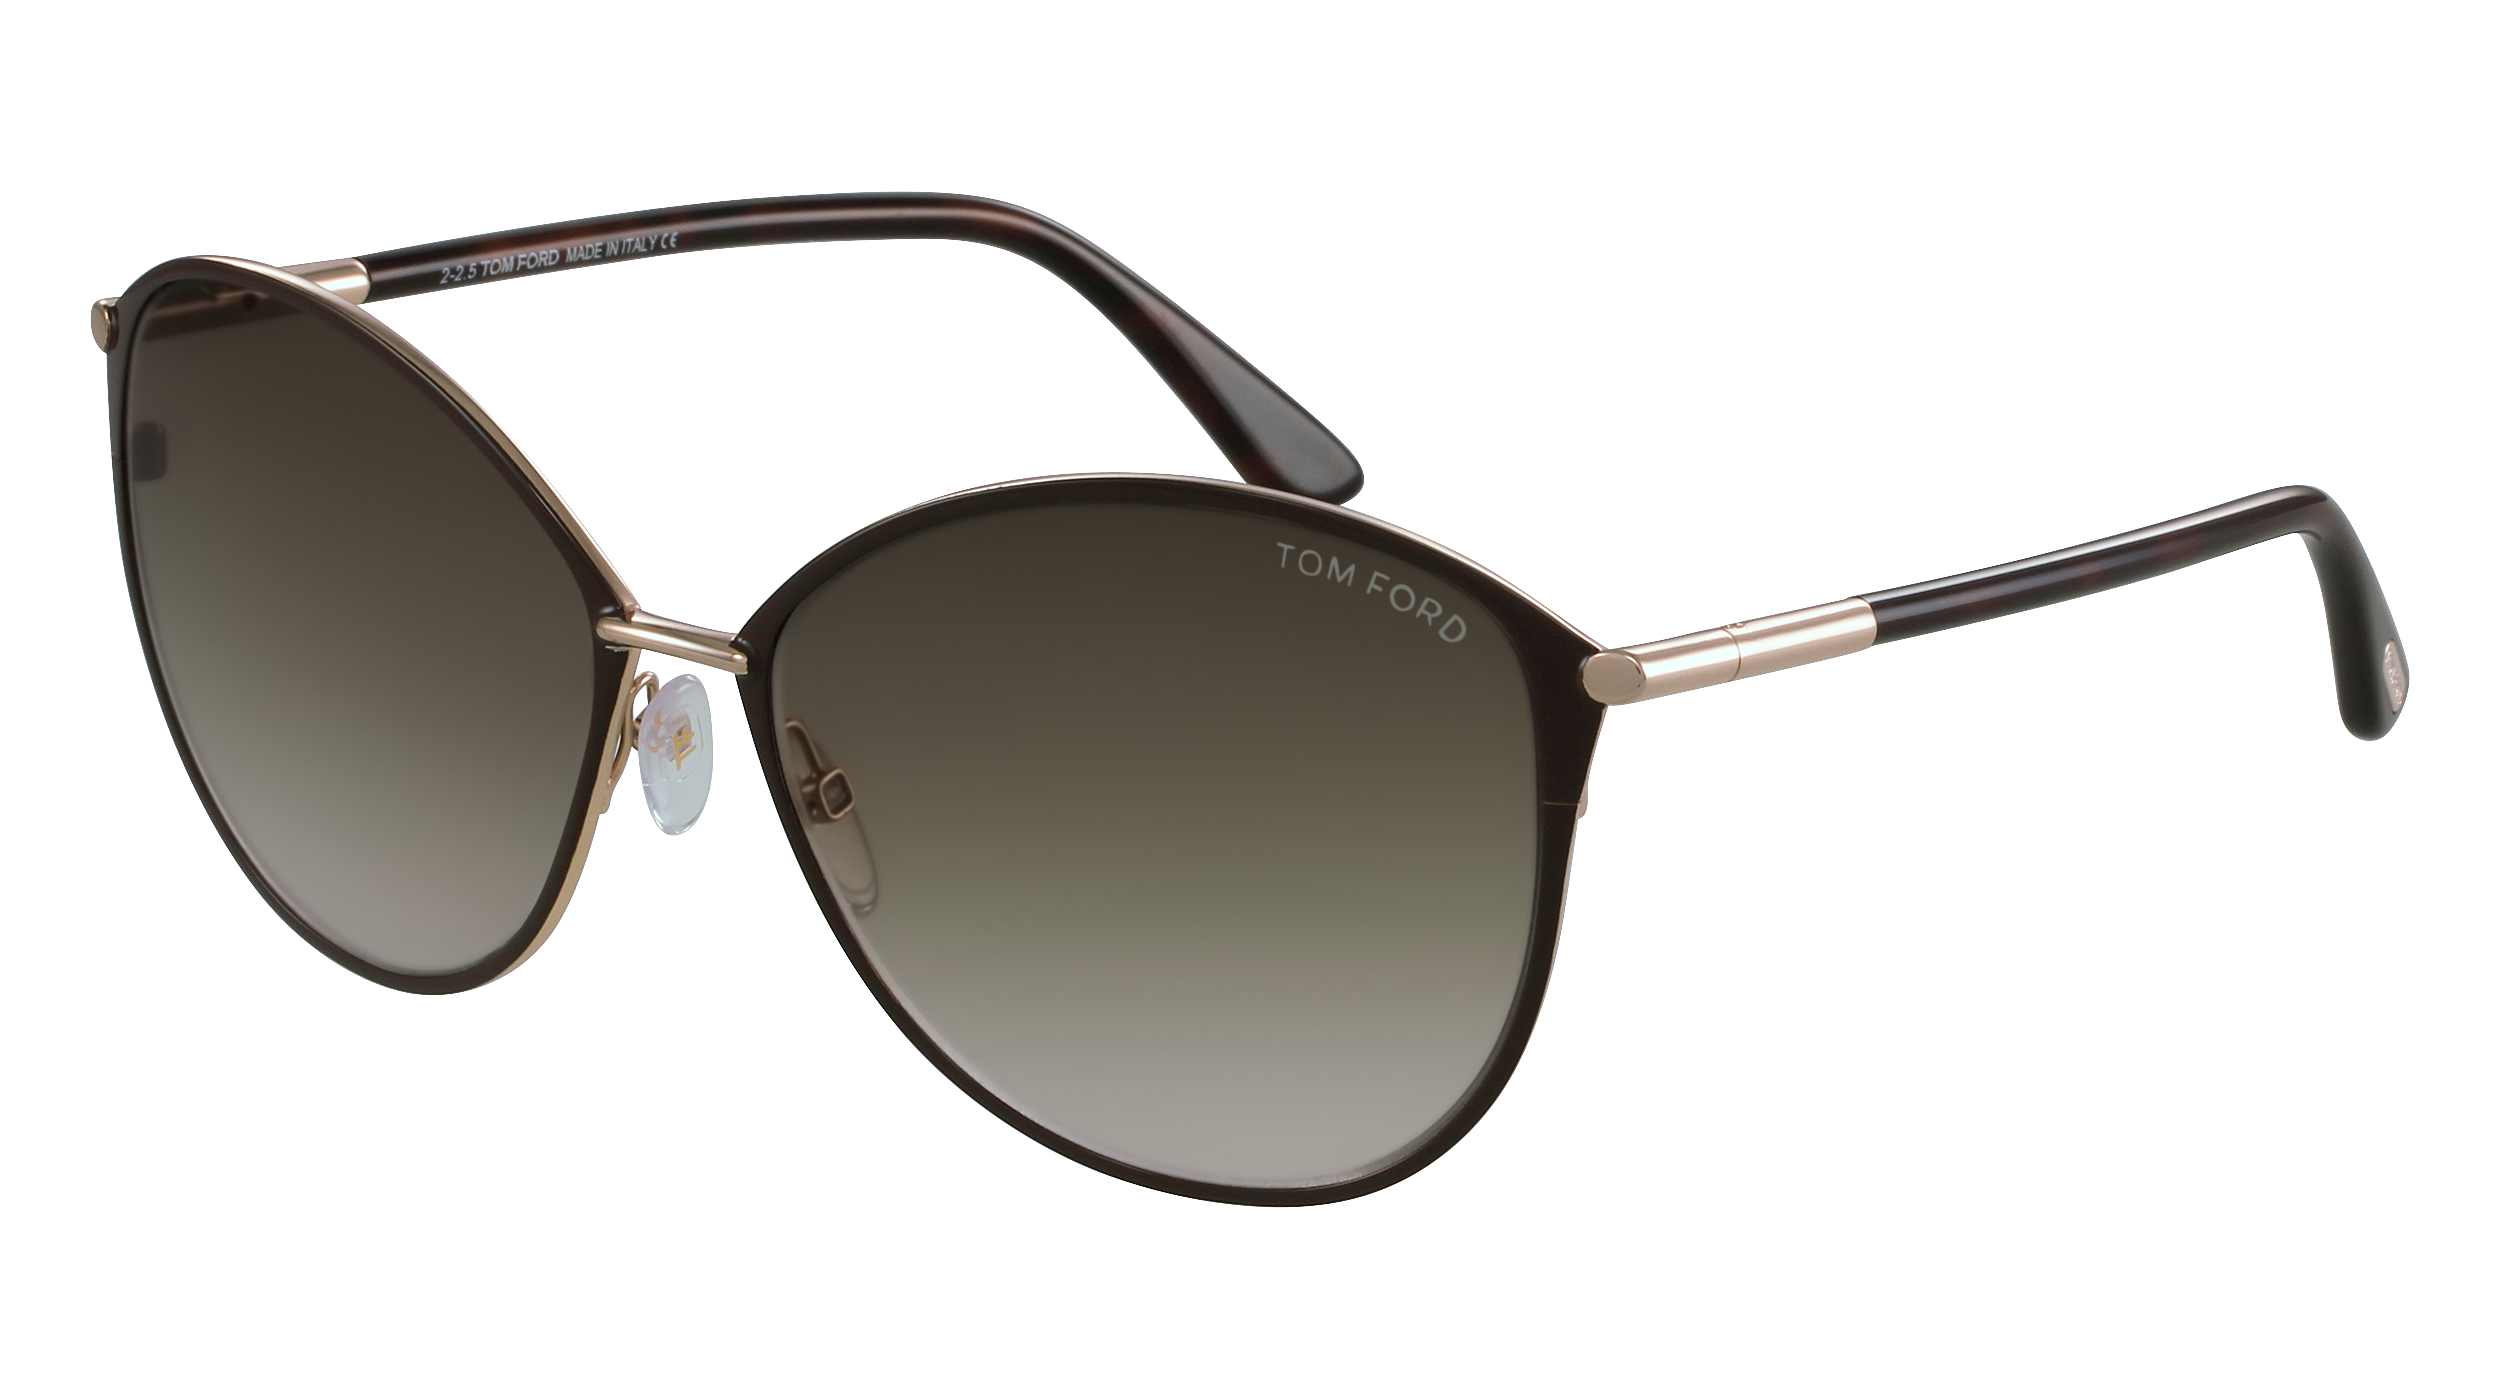 Tom Ford FT0320-S-28F-59-15-130